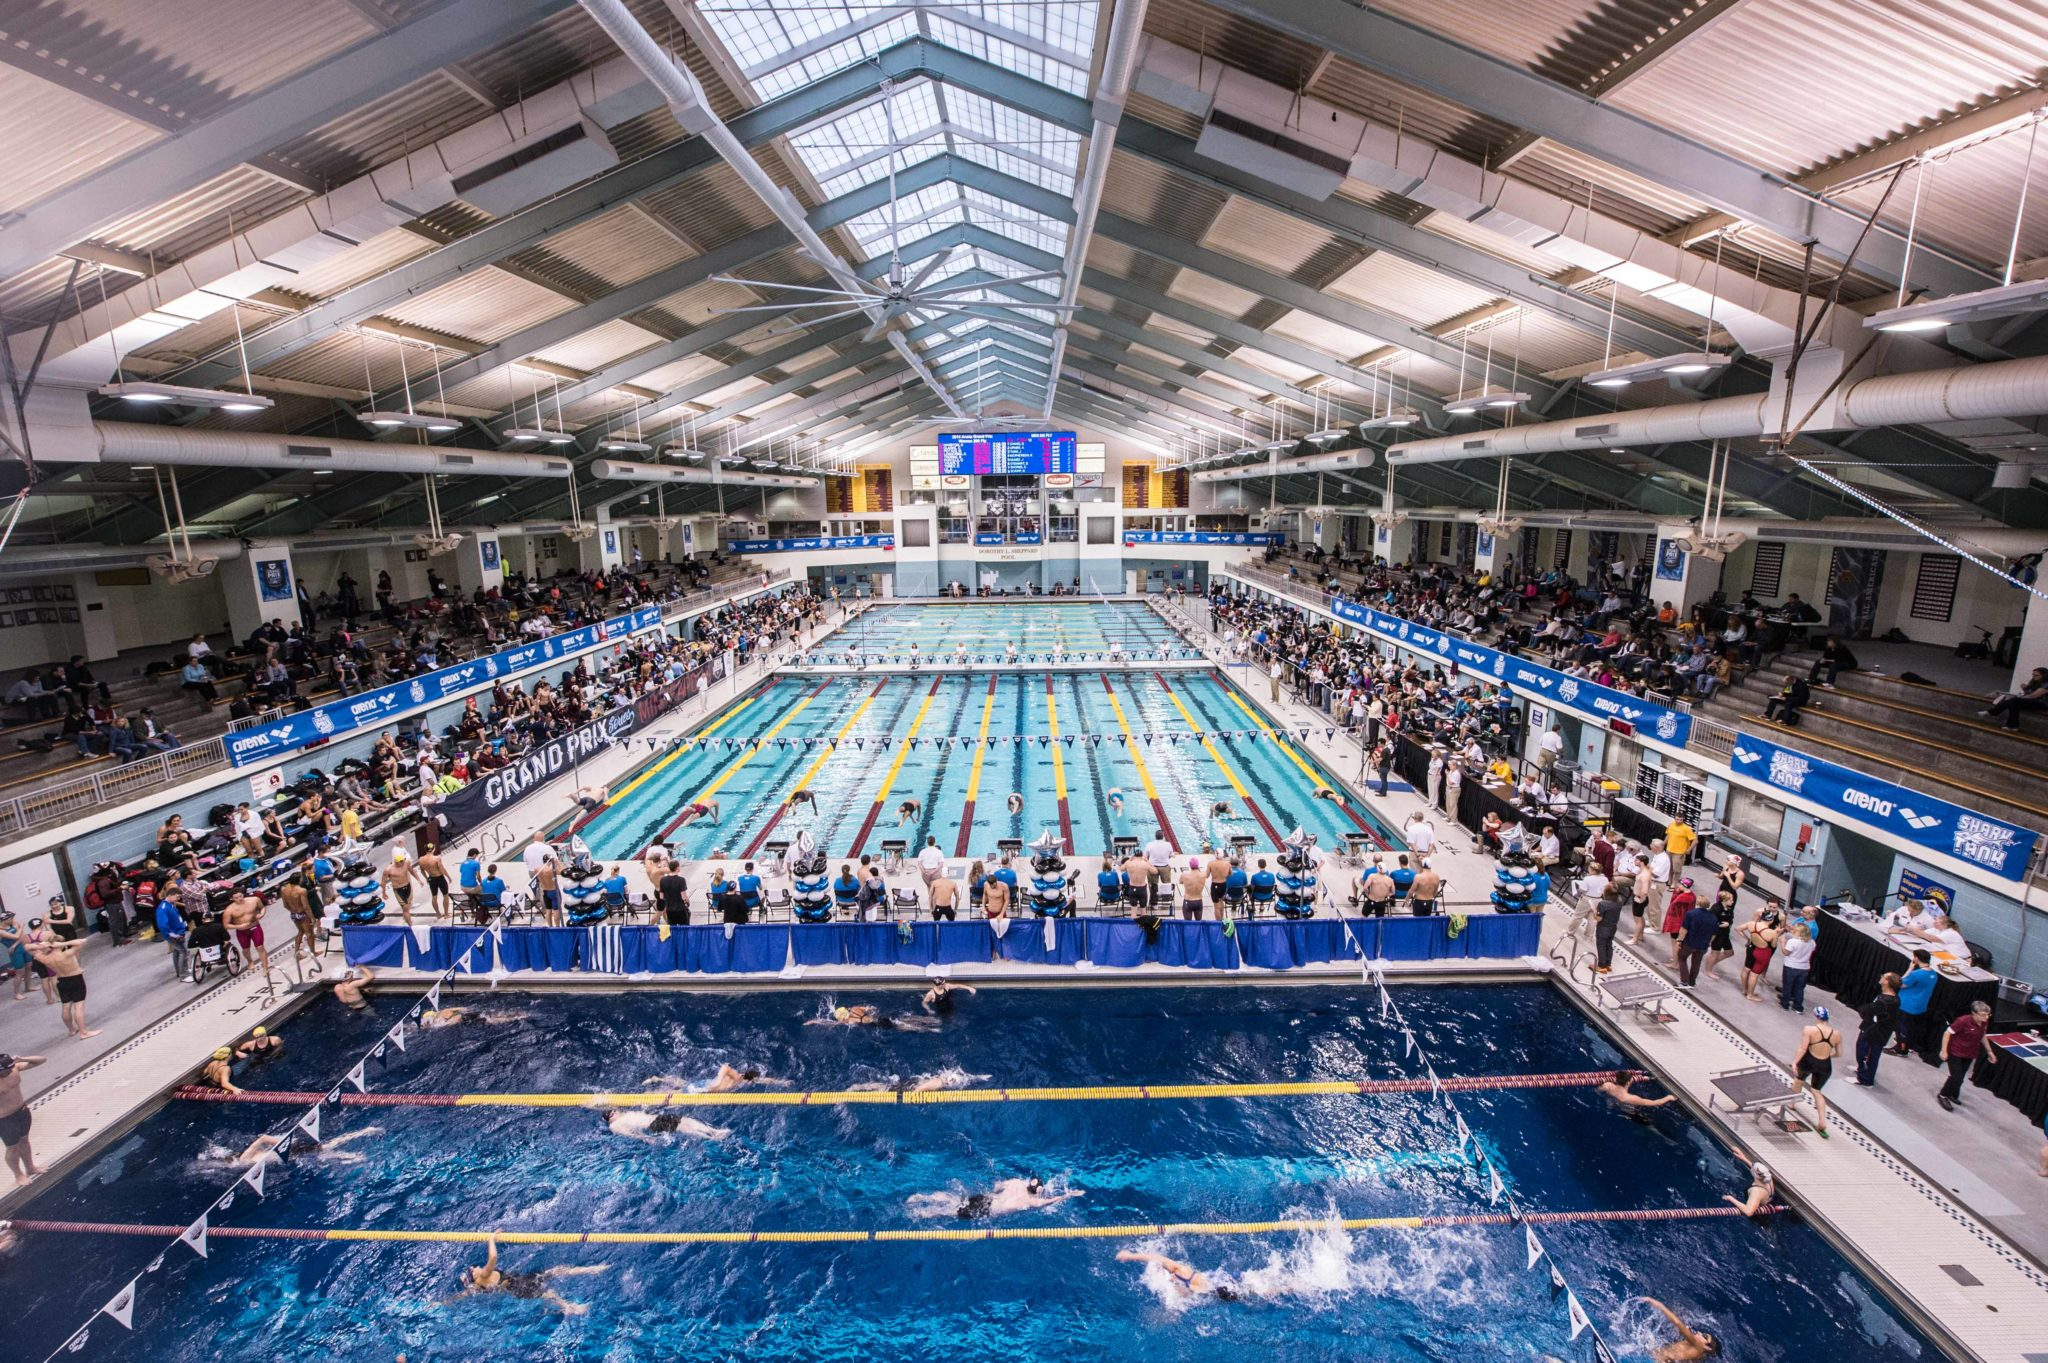 University Of Minnesota To Rename Aquatic Center After Jean K Freeman Saturday